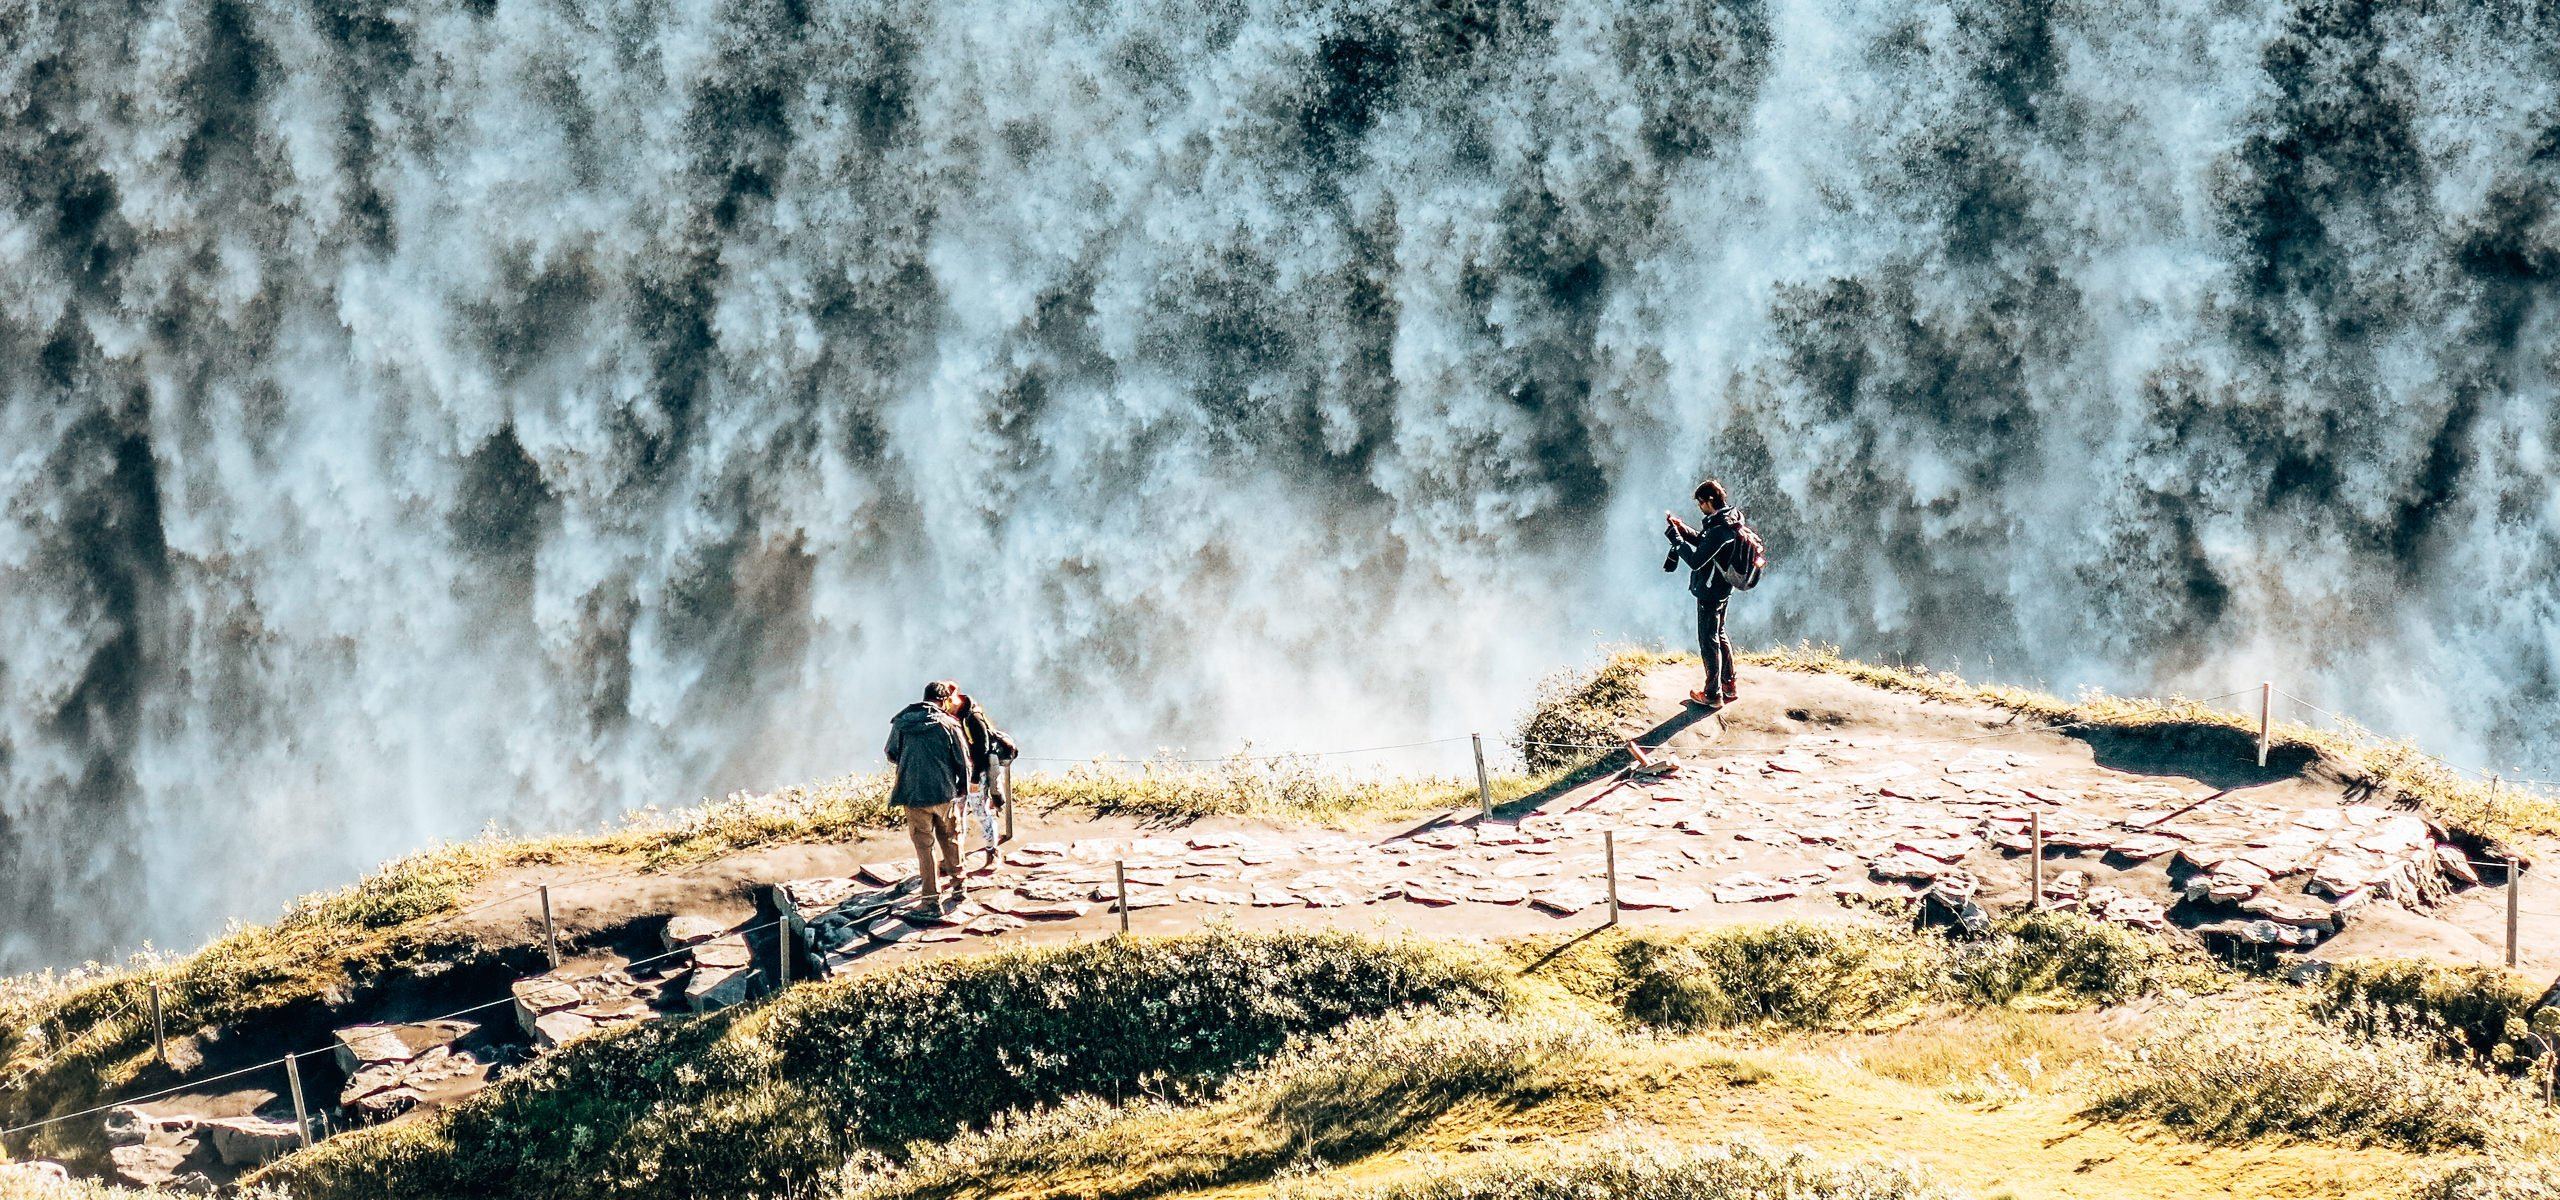 Taking in Gullfoss Falls from above